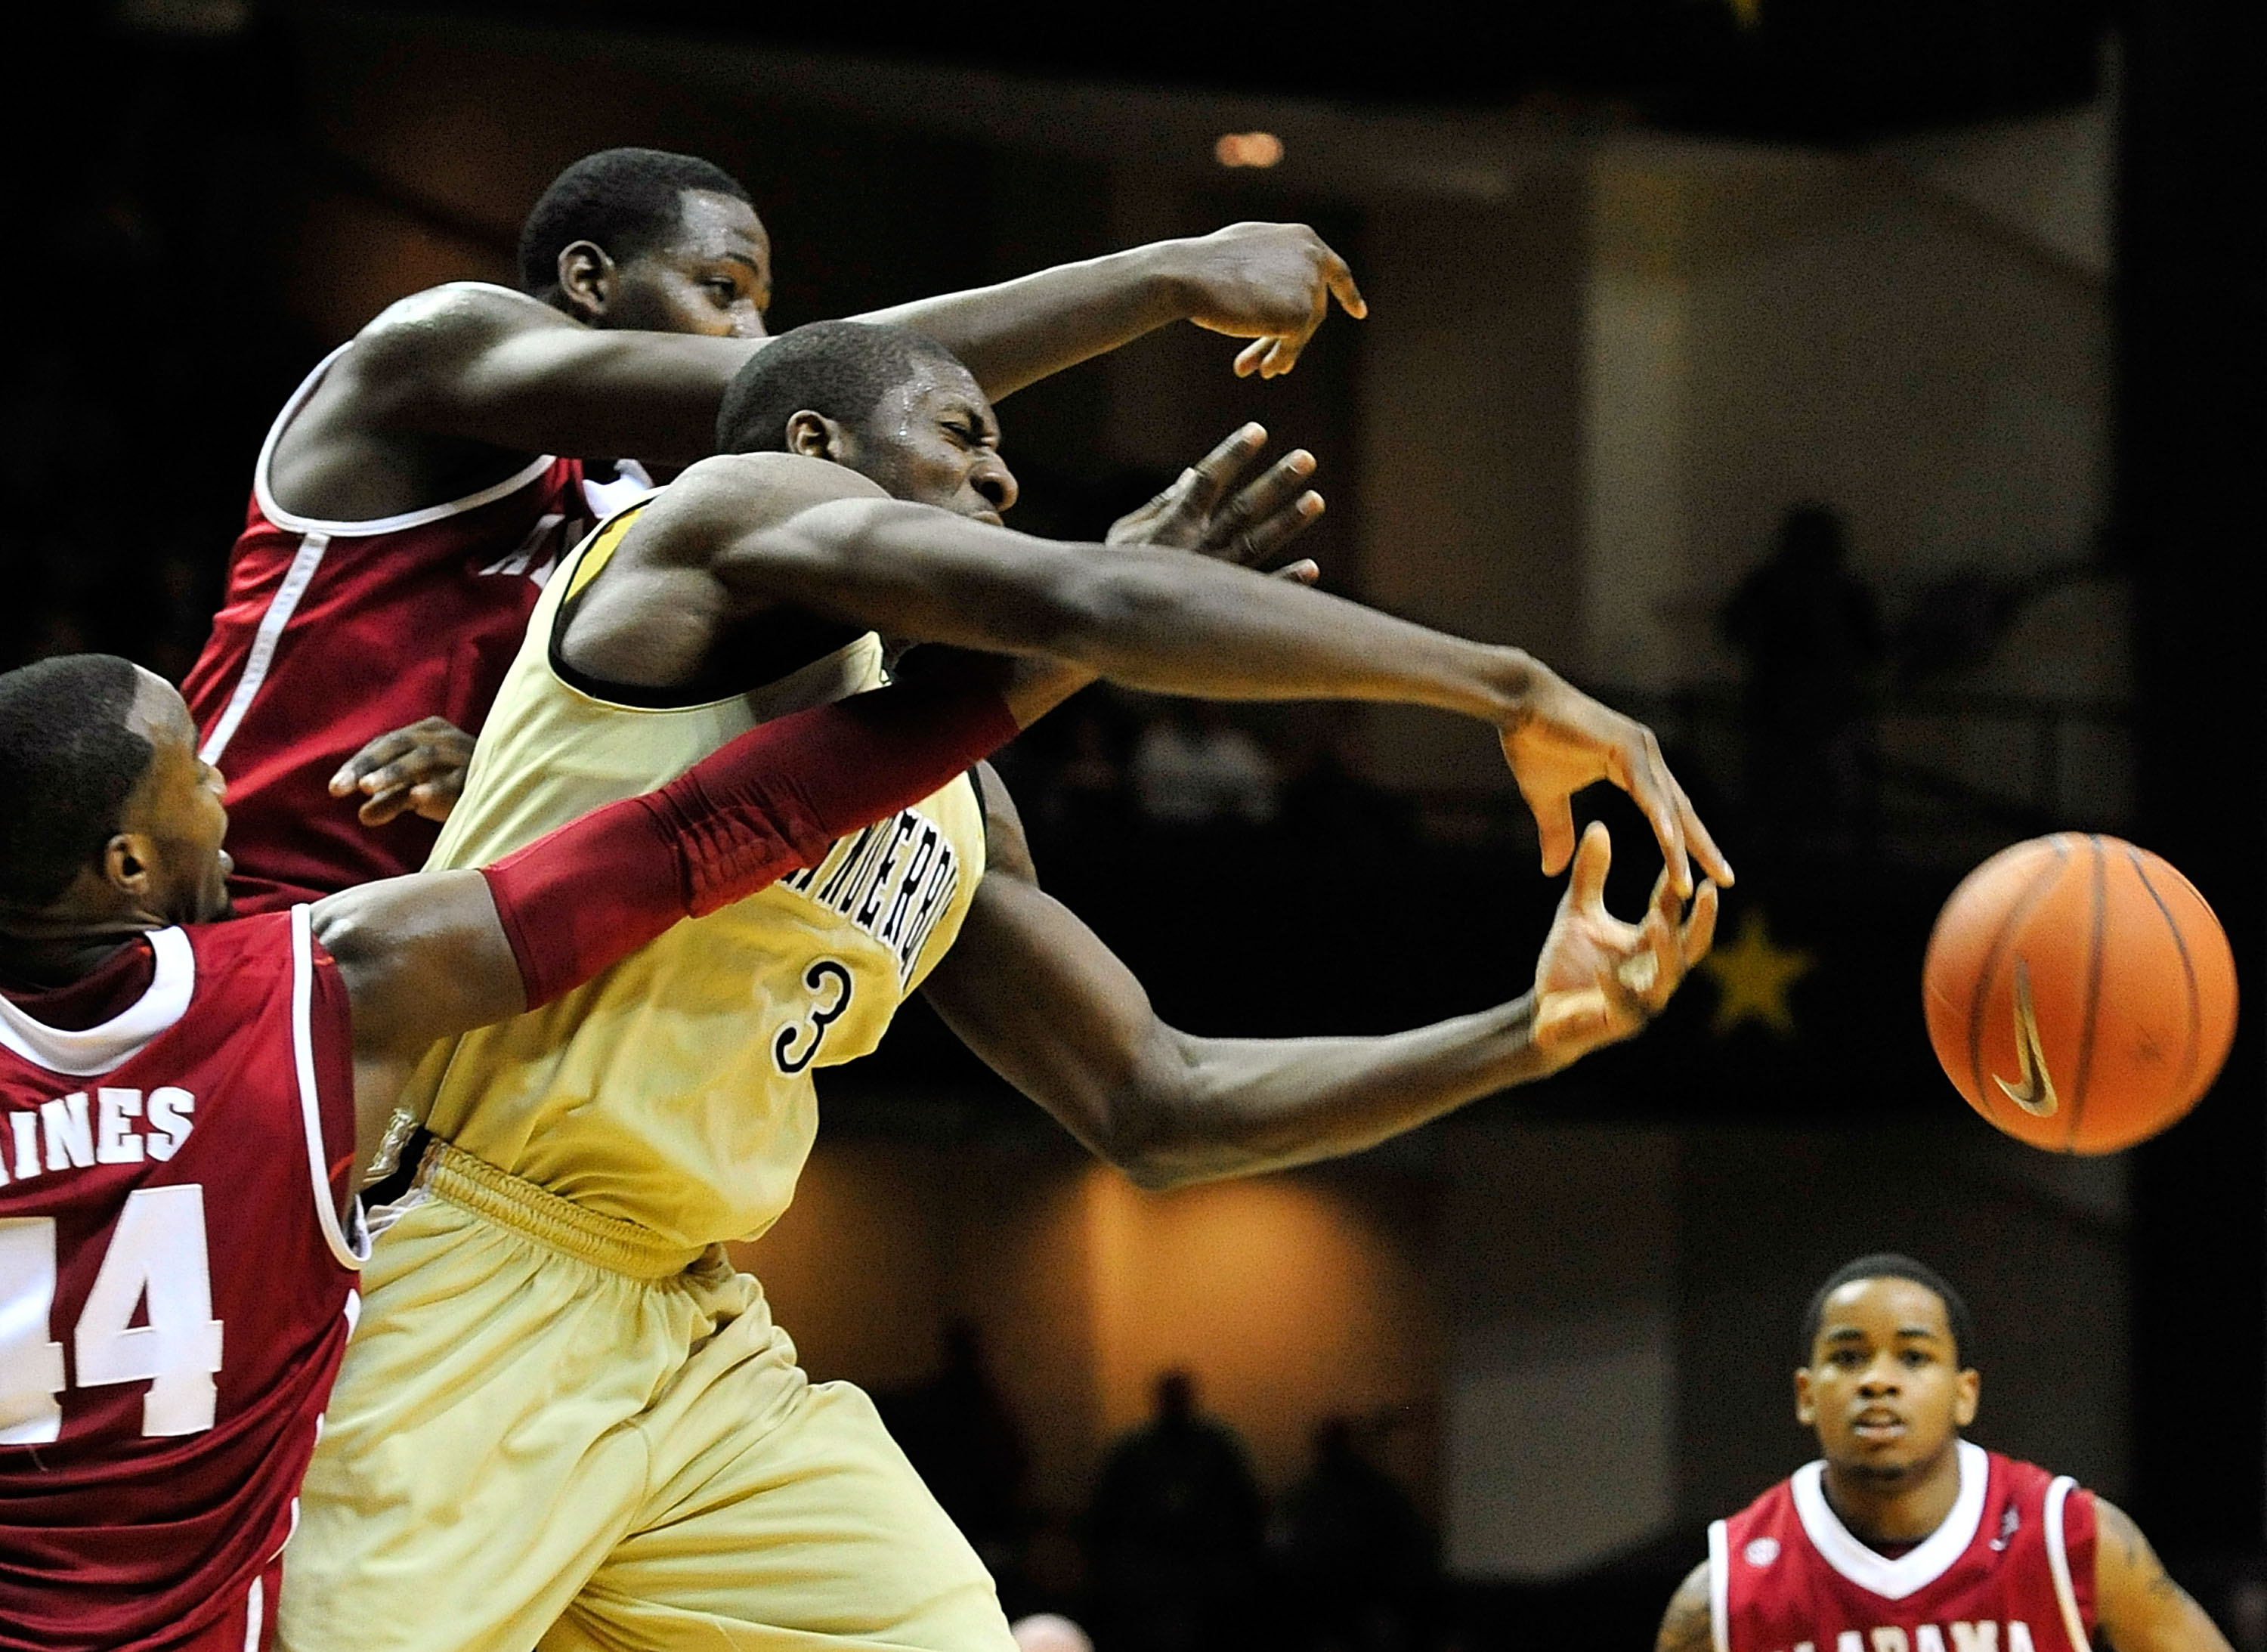 NASHVILLE, TN - FEBRUARY 10:  Festus Ezeli #3 of the Vanderbilt Commodores of battles for the ball with Chris Hines #44 and JaMychal Green #1 the Alabama Crimson Tide at Memorial Gym on February 10, 2011 in Nashville, Tennessee. Vanderbilt won 81-77. (Pho